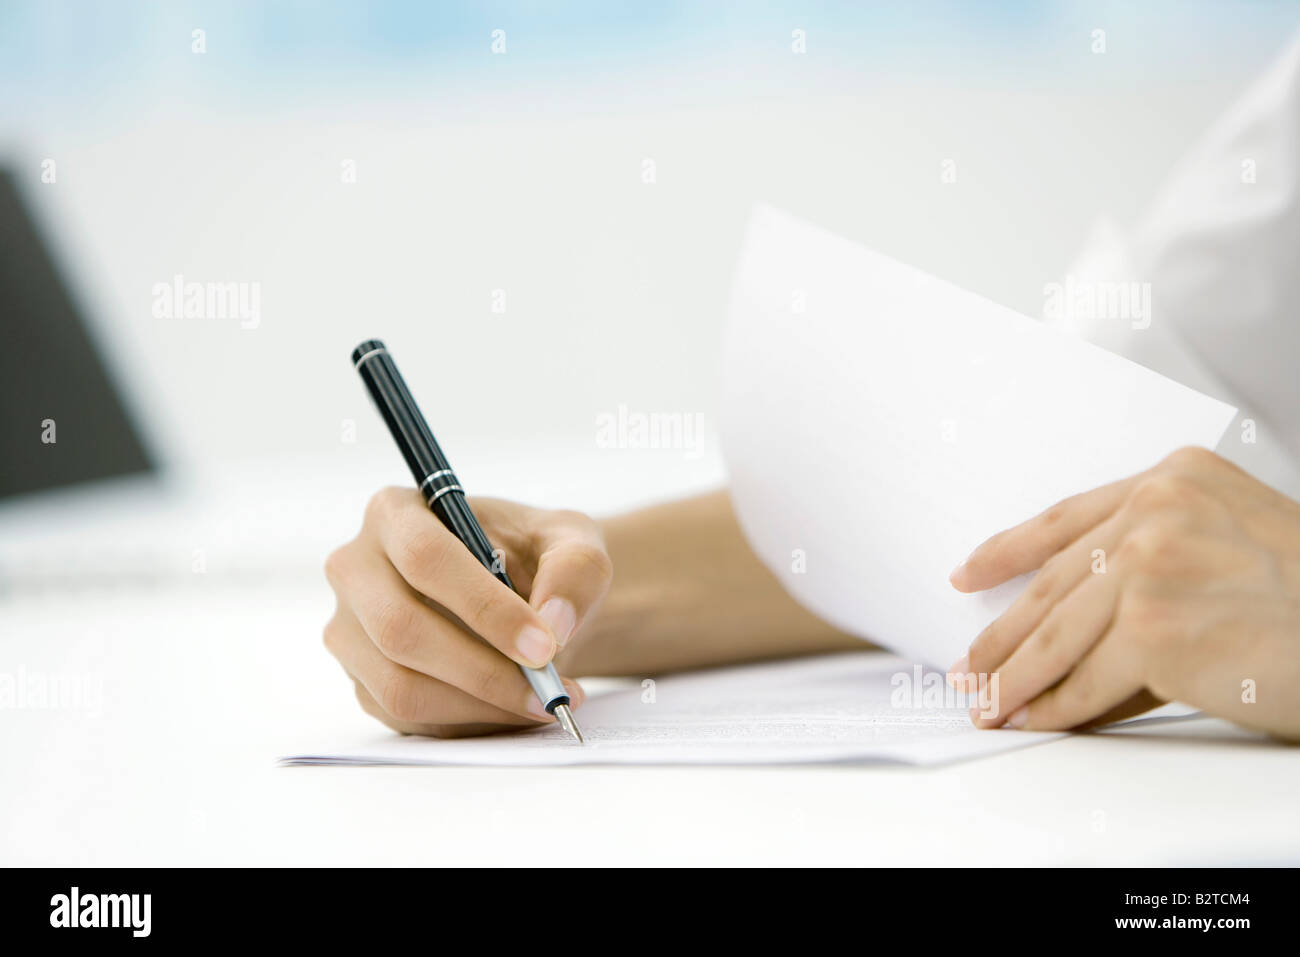 Person signing document with pen, cropped view of hands - Stock Image